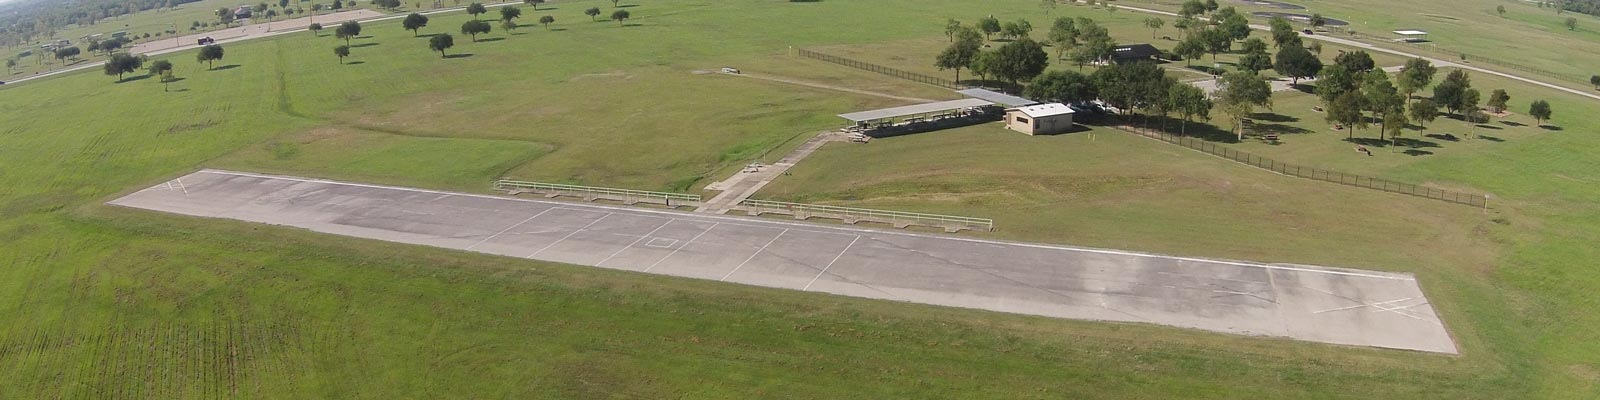 Aerial View of Dick Scobee Memorial Airfield